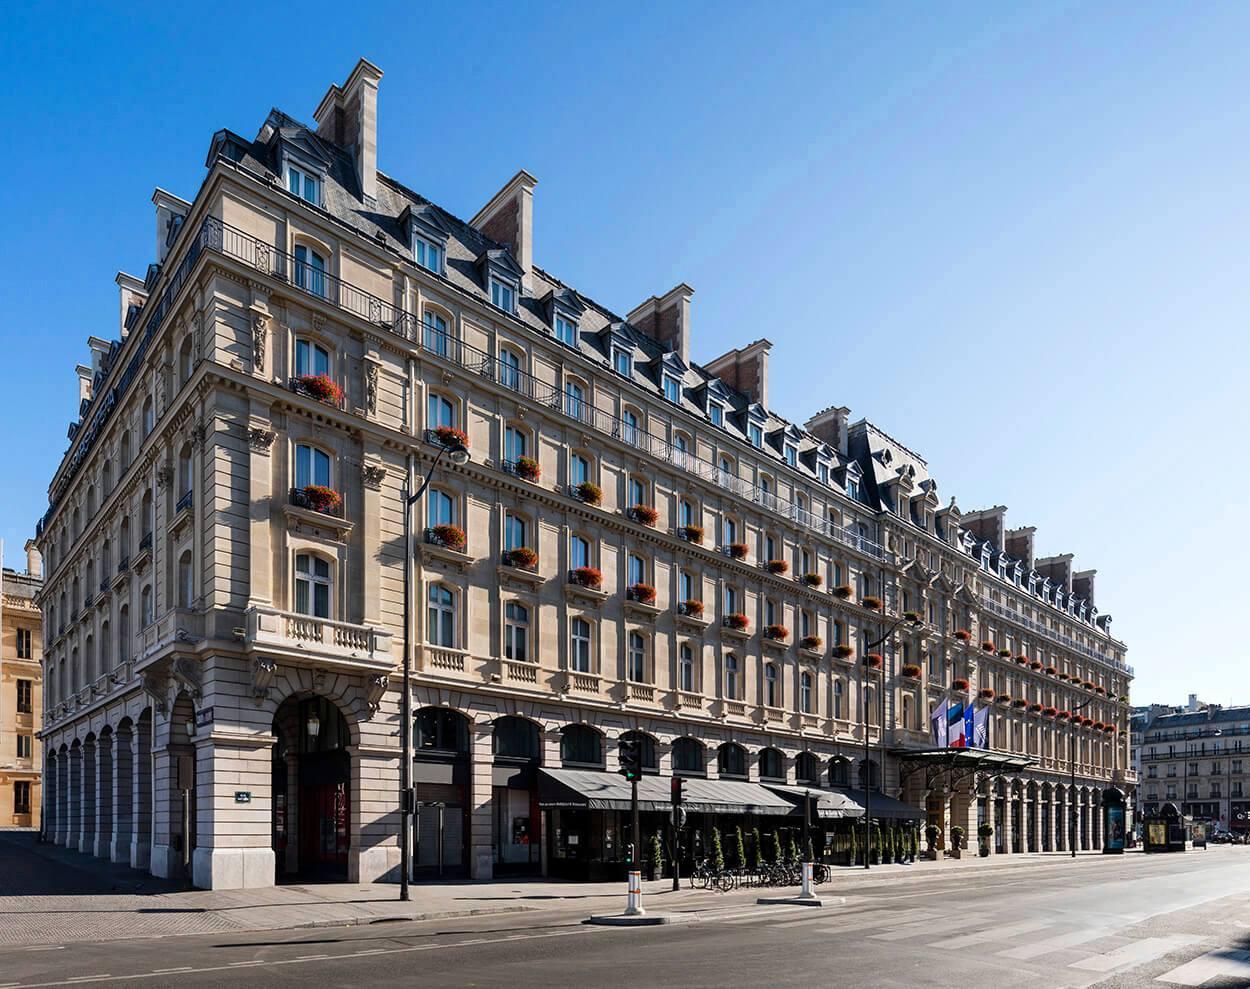 Classy Parisian hotel stay at Hilton Paris Opera